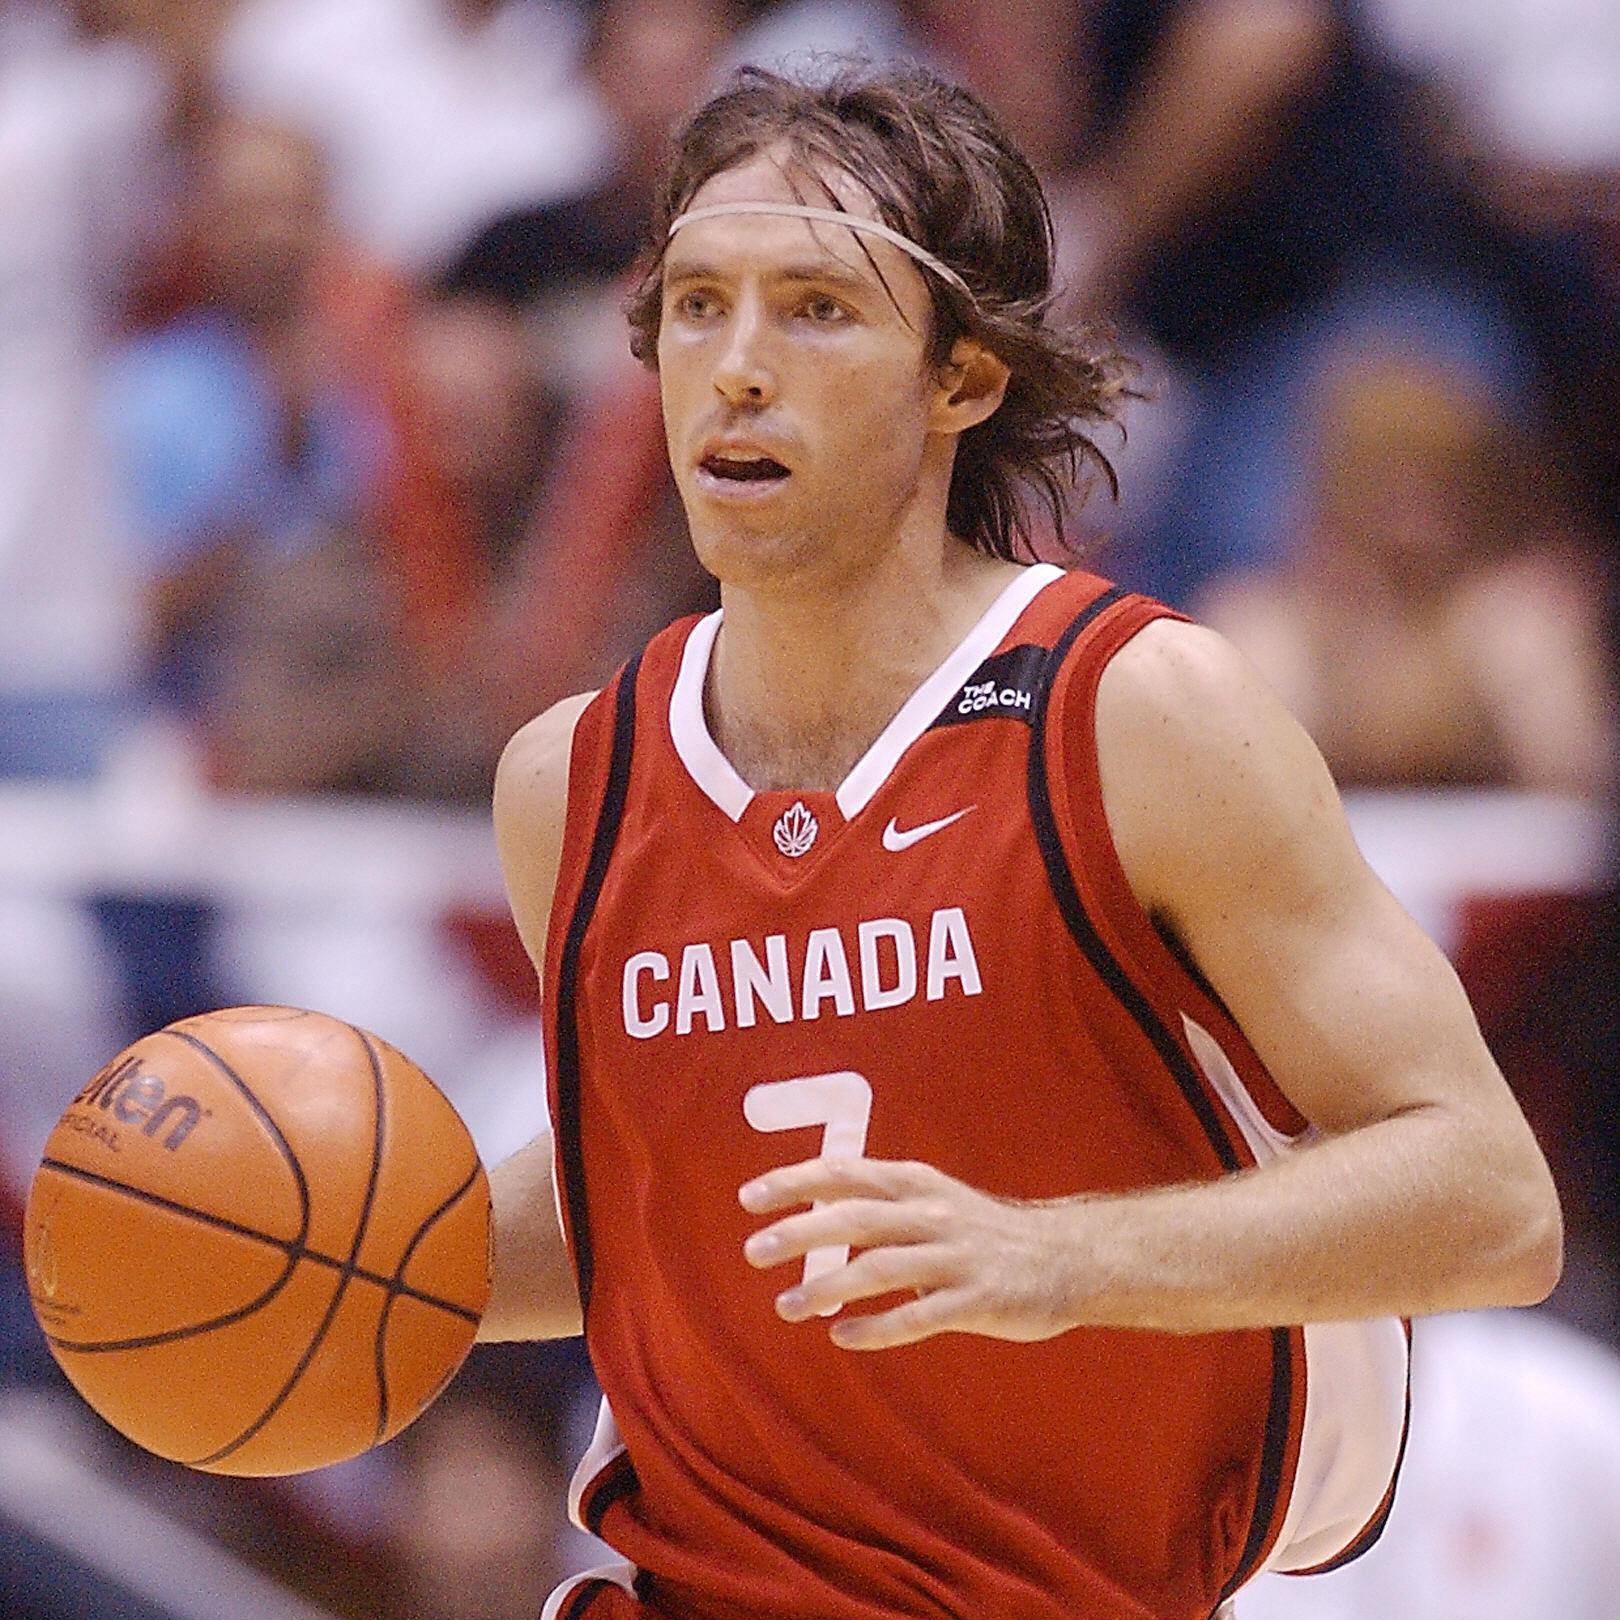 Victoria's Steve Nash to be enshrined in the basketball HOF